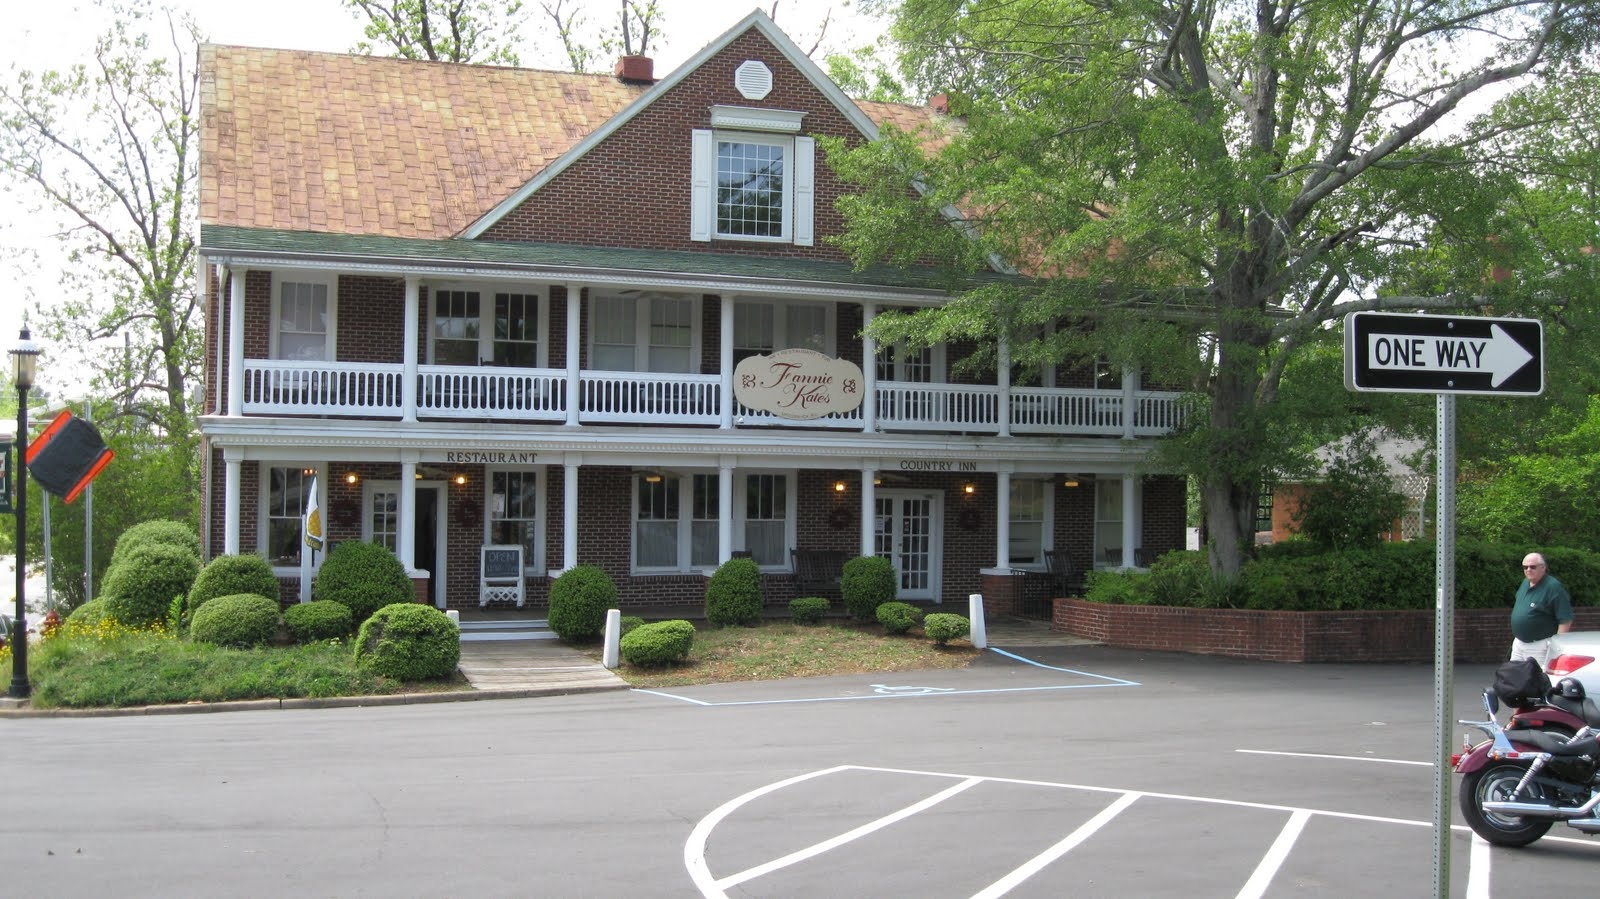 So Here We Are In Mccormick South Carolina Is One Of Laurie S Family Names This A Photo Fannie Kate Country Inn